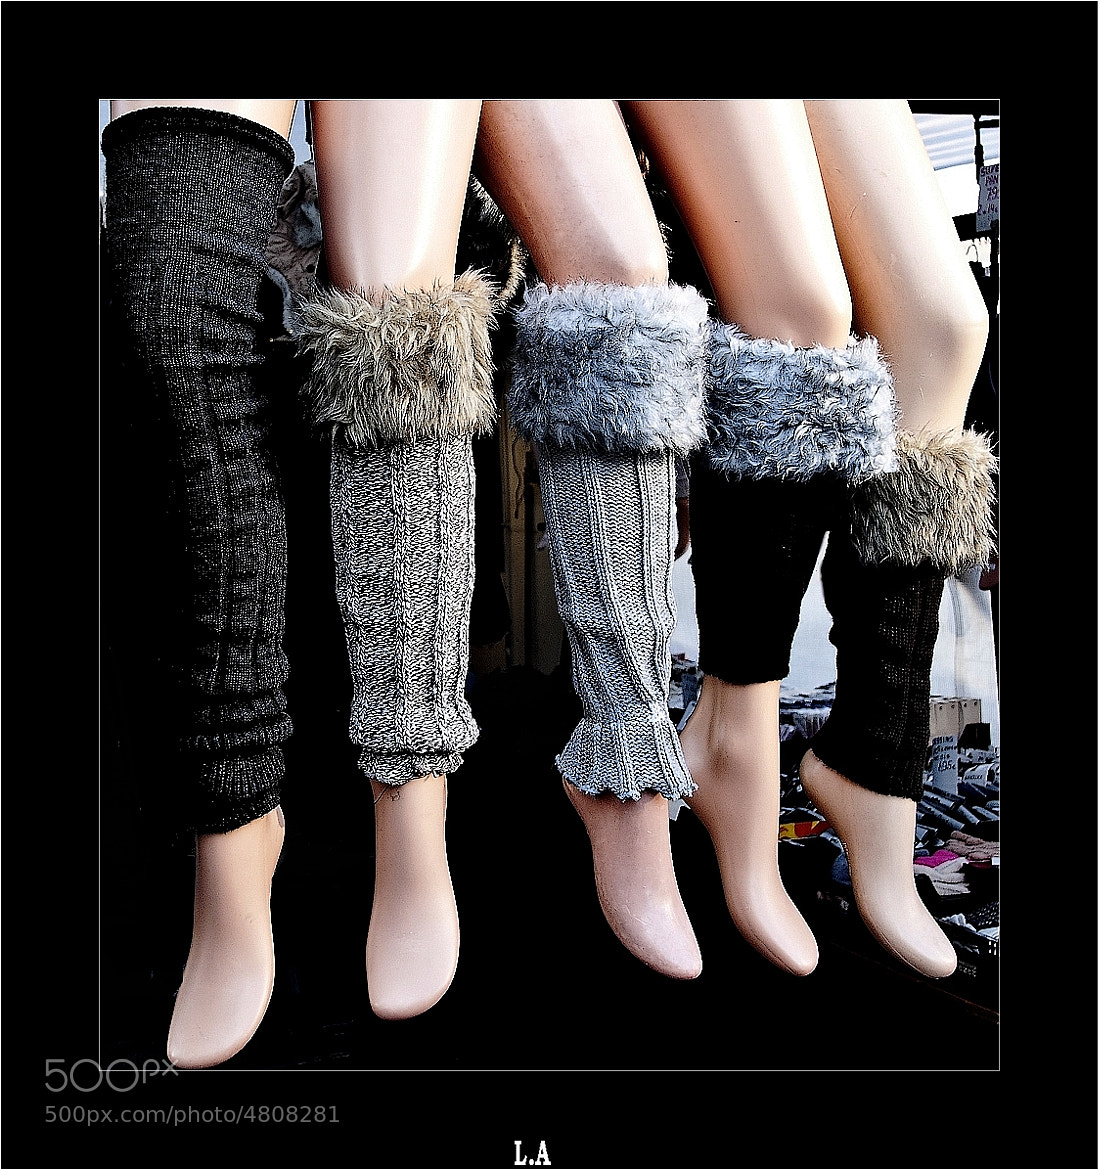 Photograph Legs - Two pairs and an one-legged woman by Loïc Auffray on 500px